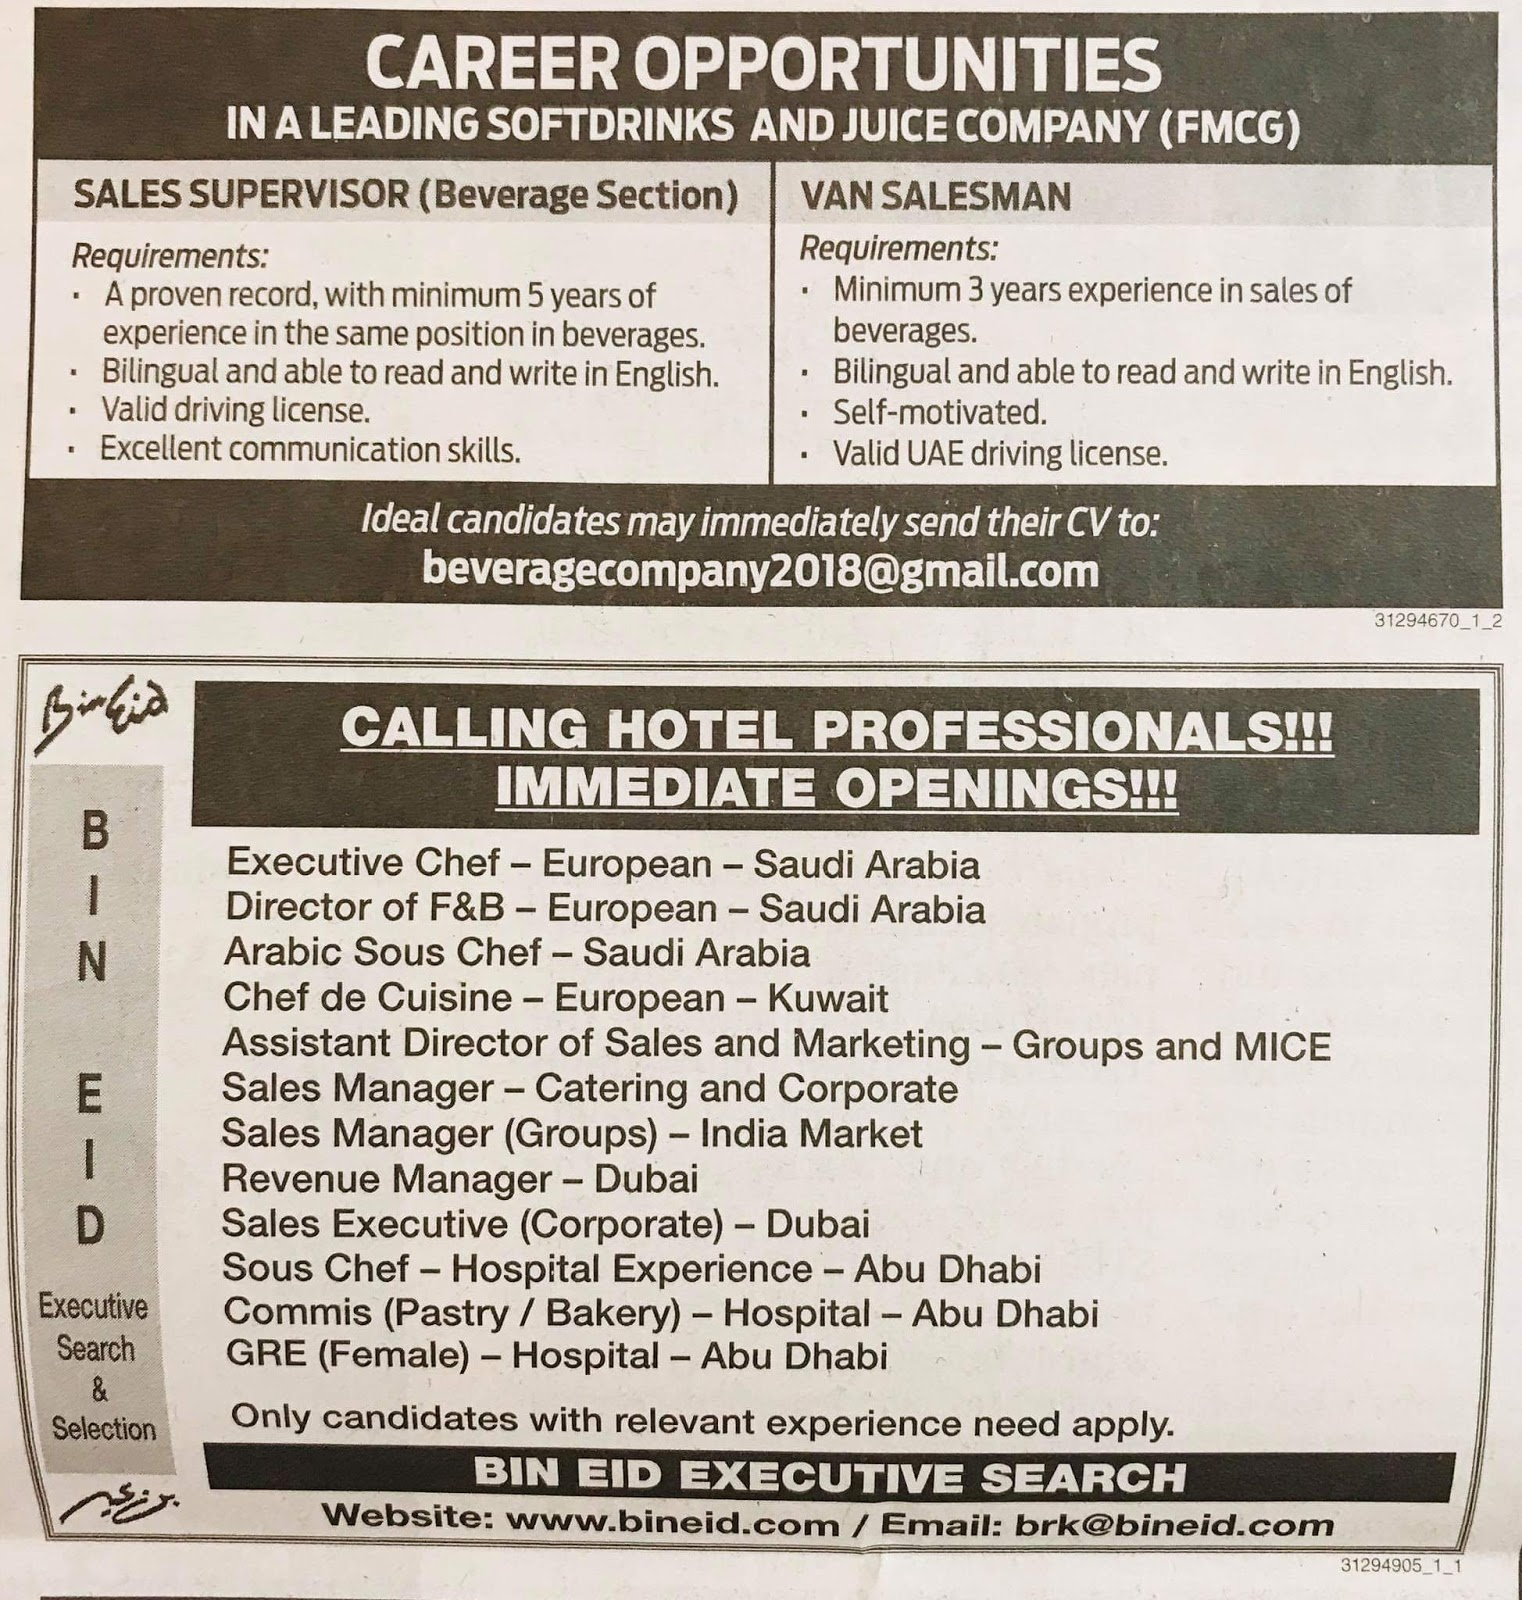 Career Opportunities In A Leading Softdrink And Juice Co Calling Hotel Professionals Immediate Opening Khaleej Times Uae Uae 1711908 Jobs In Abroad